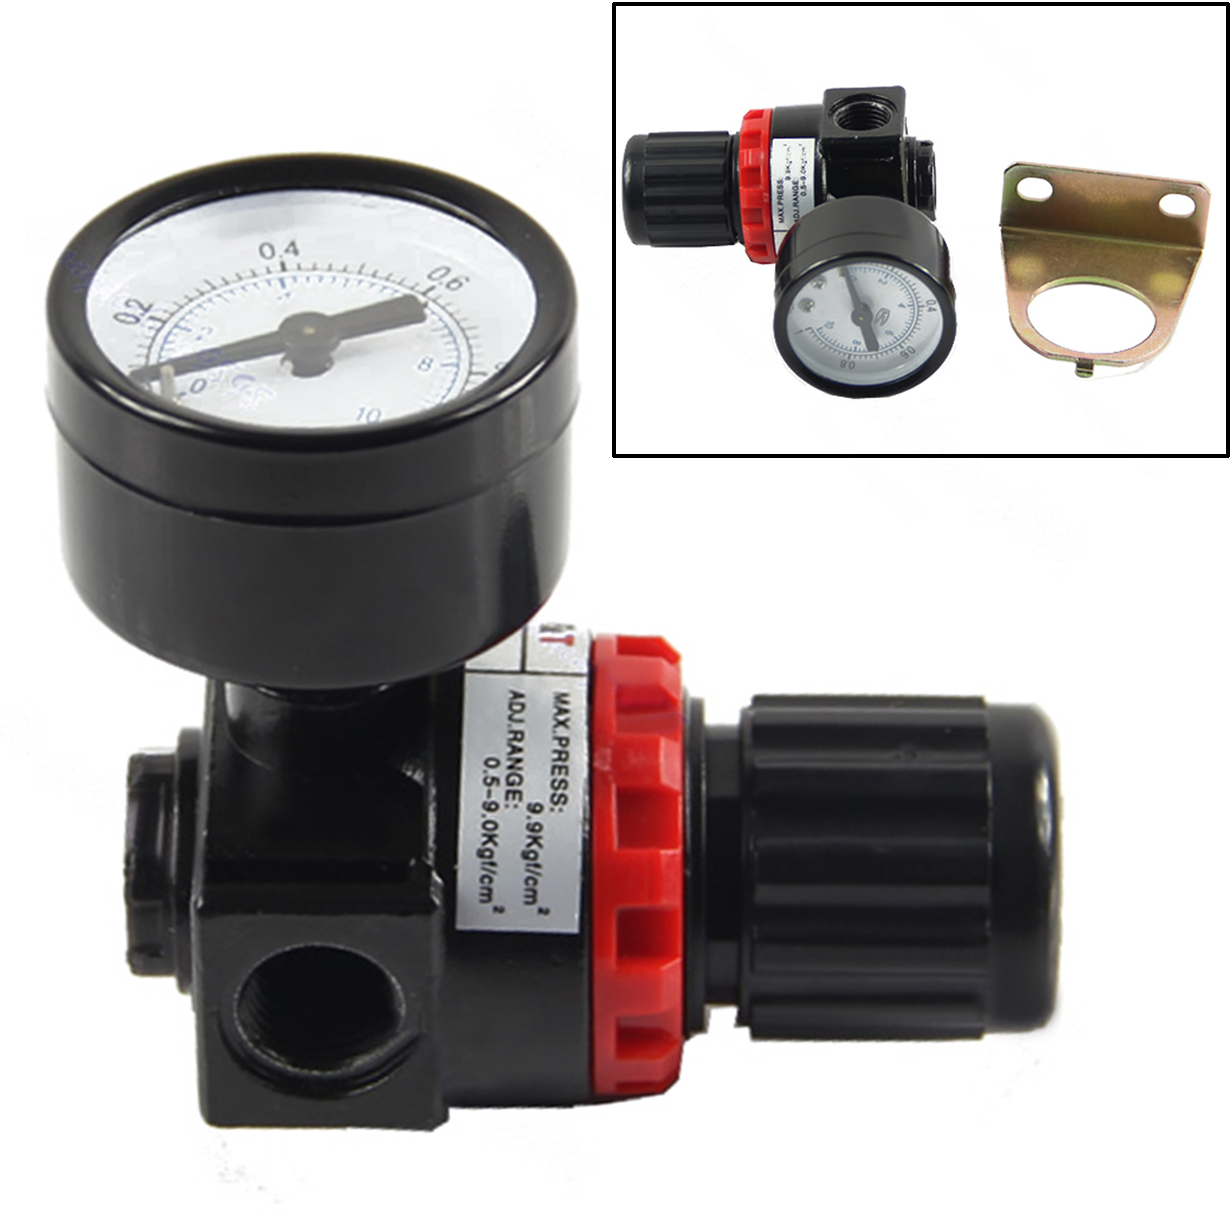 1pc Air Control Compressor Relief Regulator Pressure Regulating Valve AR2000 75x40x40mm compressor air control pressure gauge relief regulating regulator valve with 6mm hose fittings